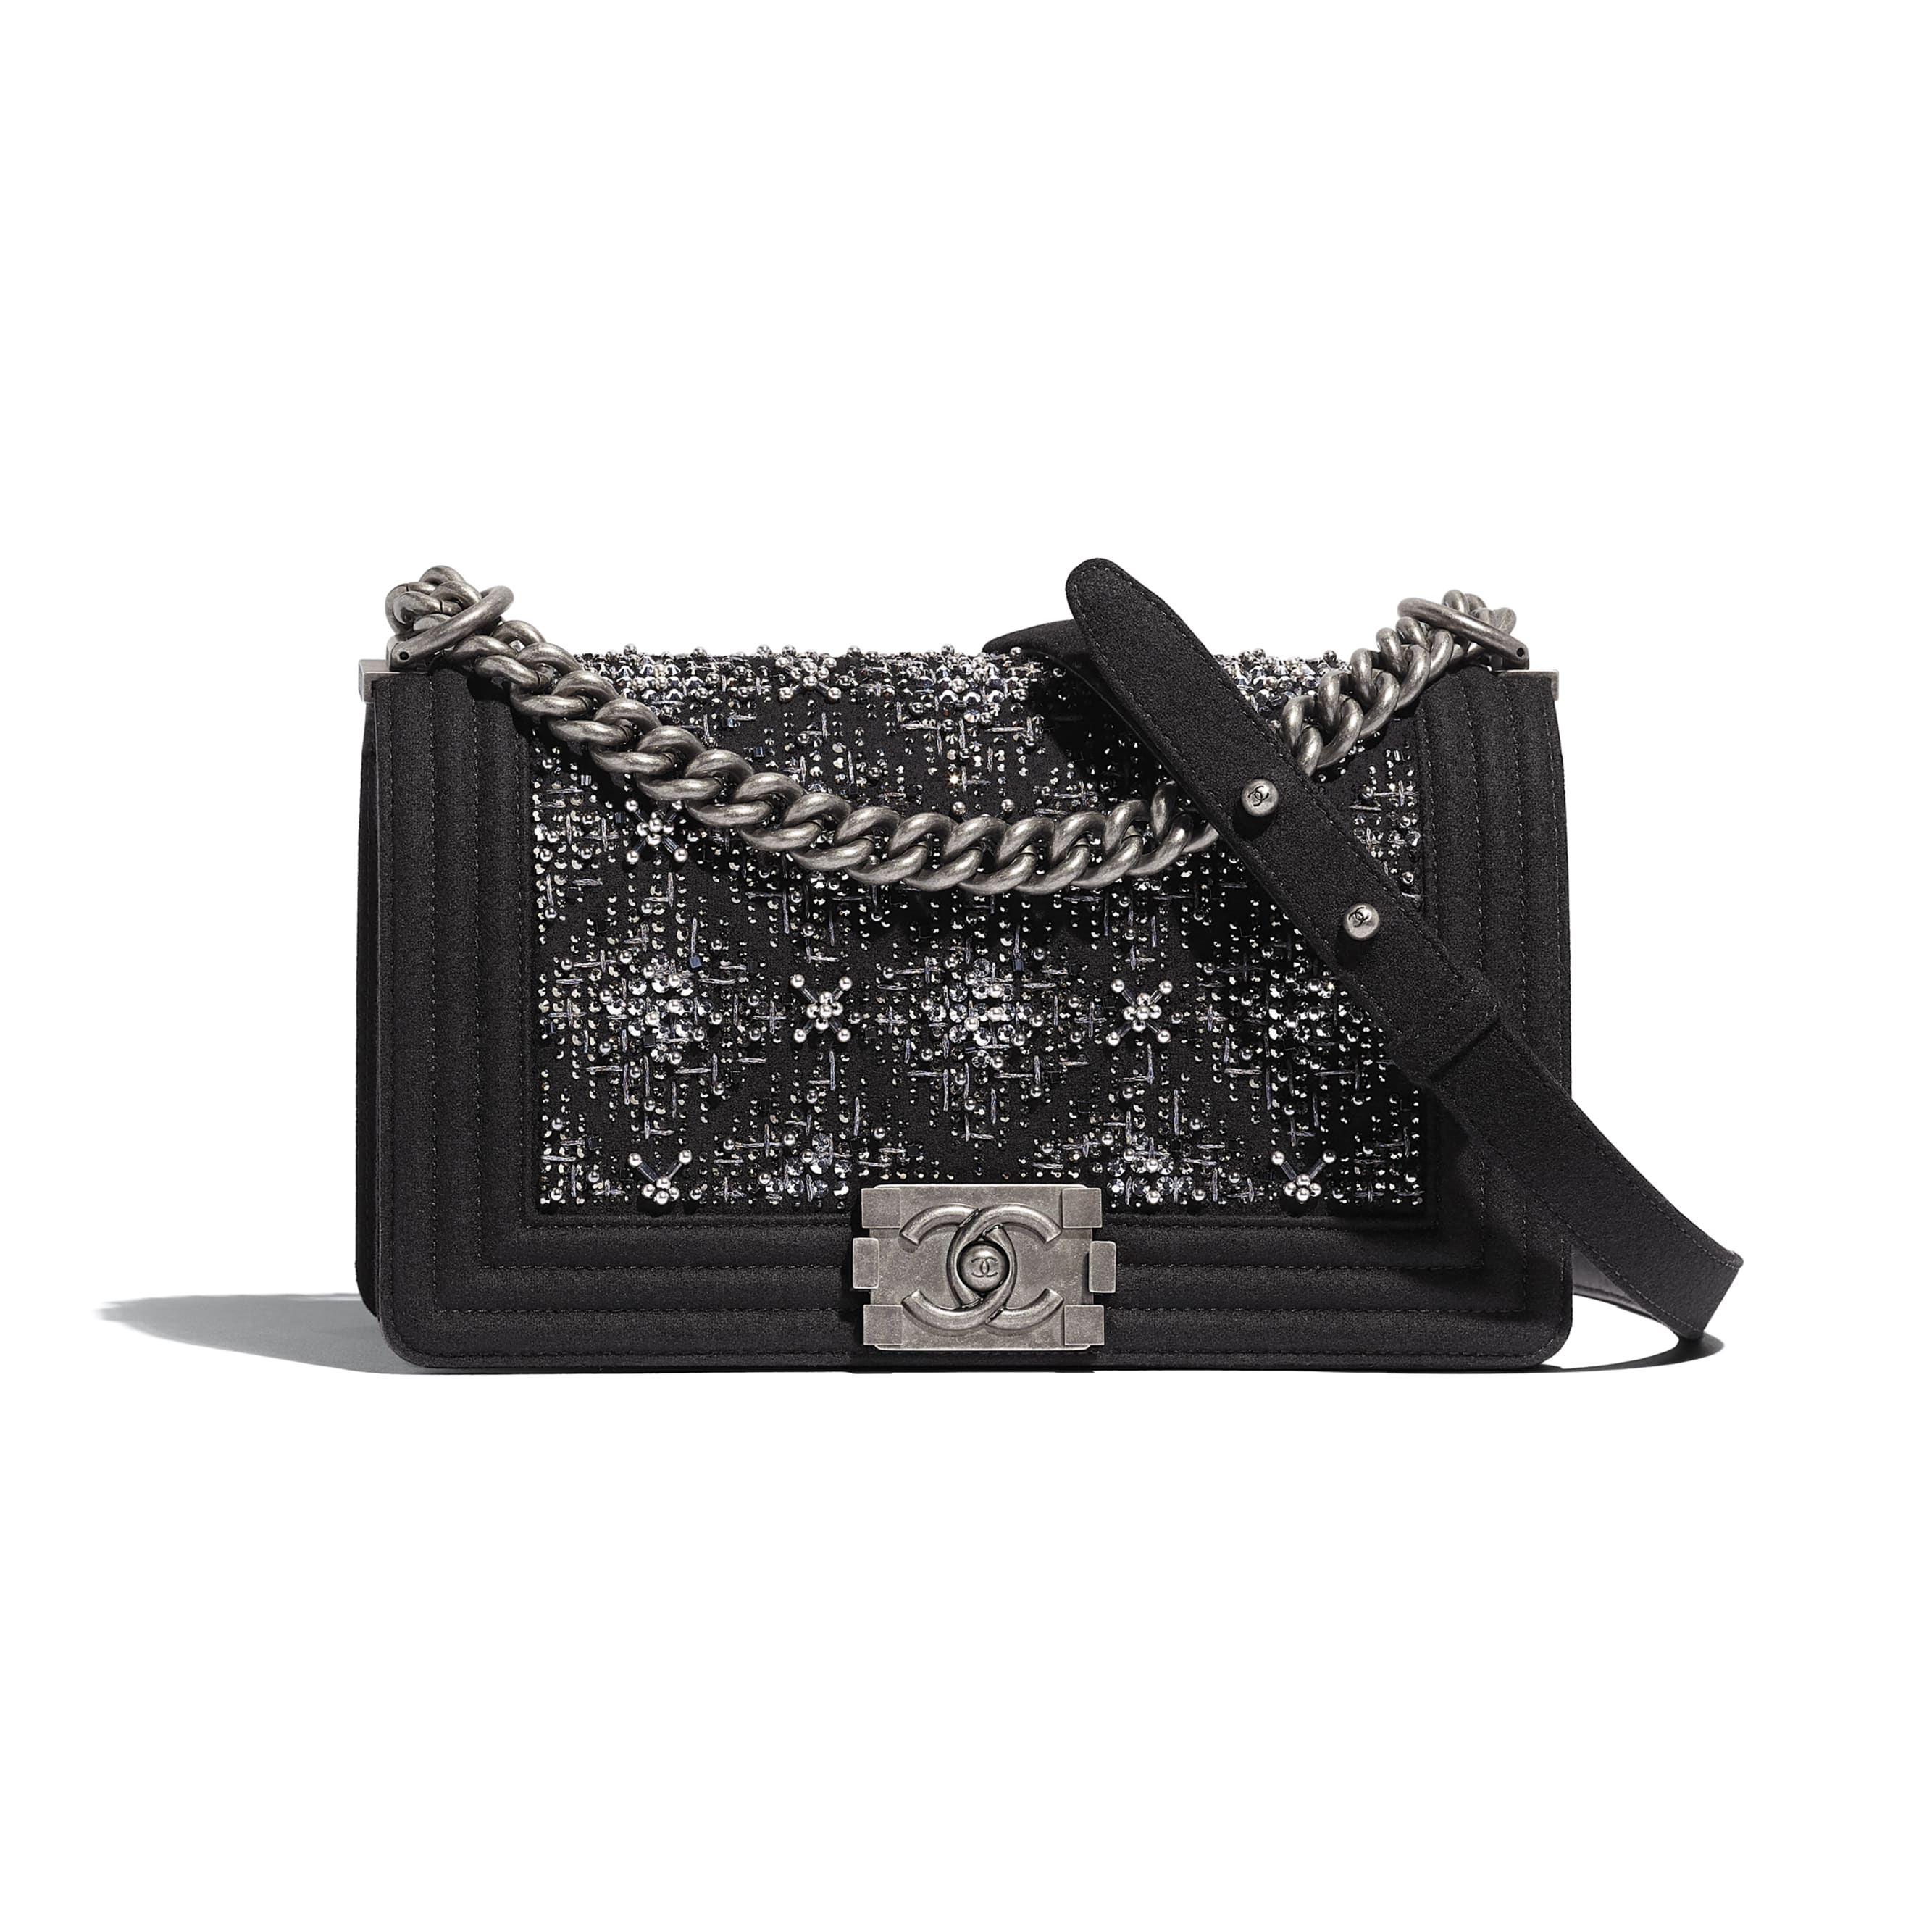 BOY CHANEL Handbag - Black - Wool, Strass & Ruthenium-Finish Metal - Default view - see standard sized version